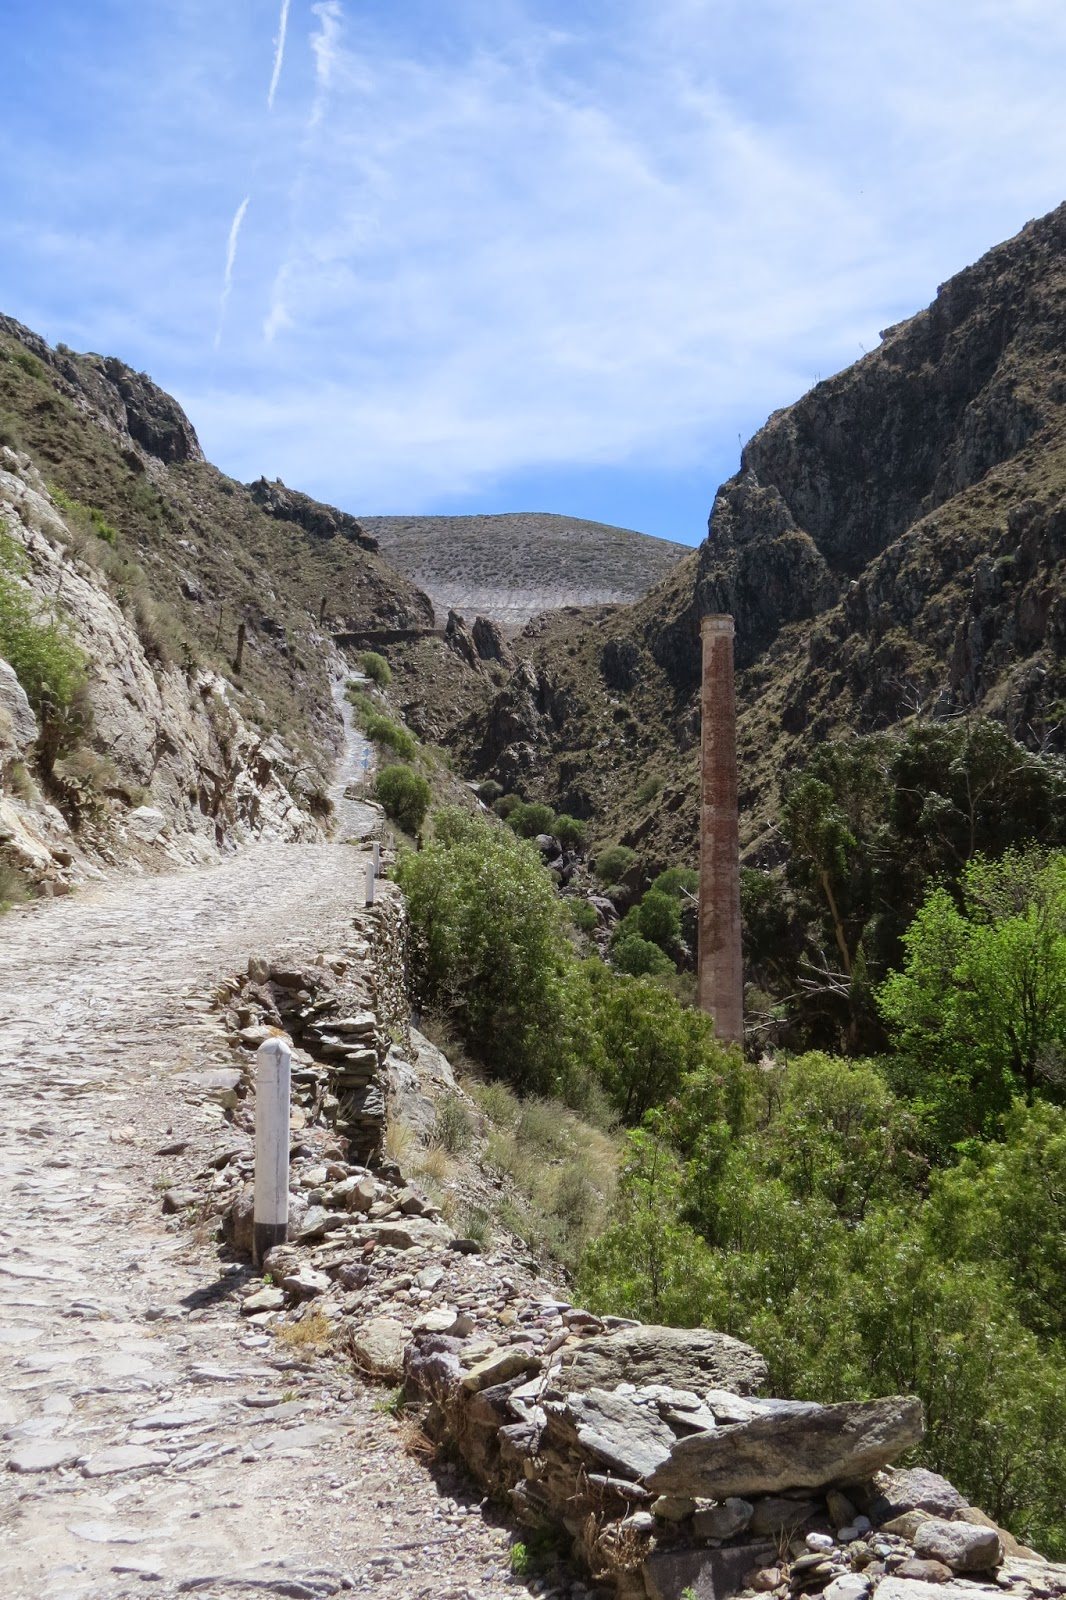 The old road from Estacion de Catorce to Real de Catorce